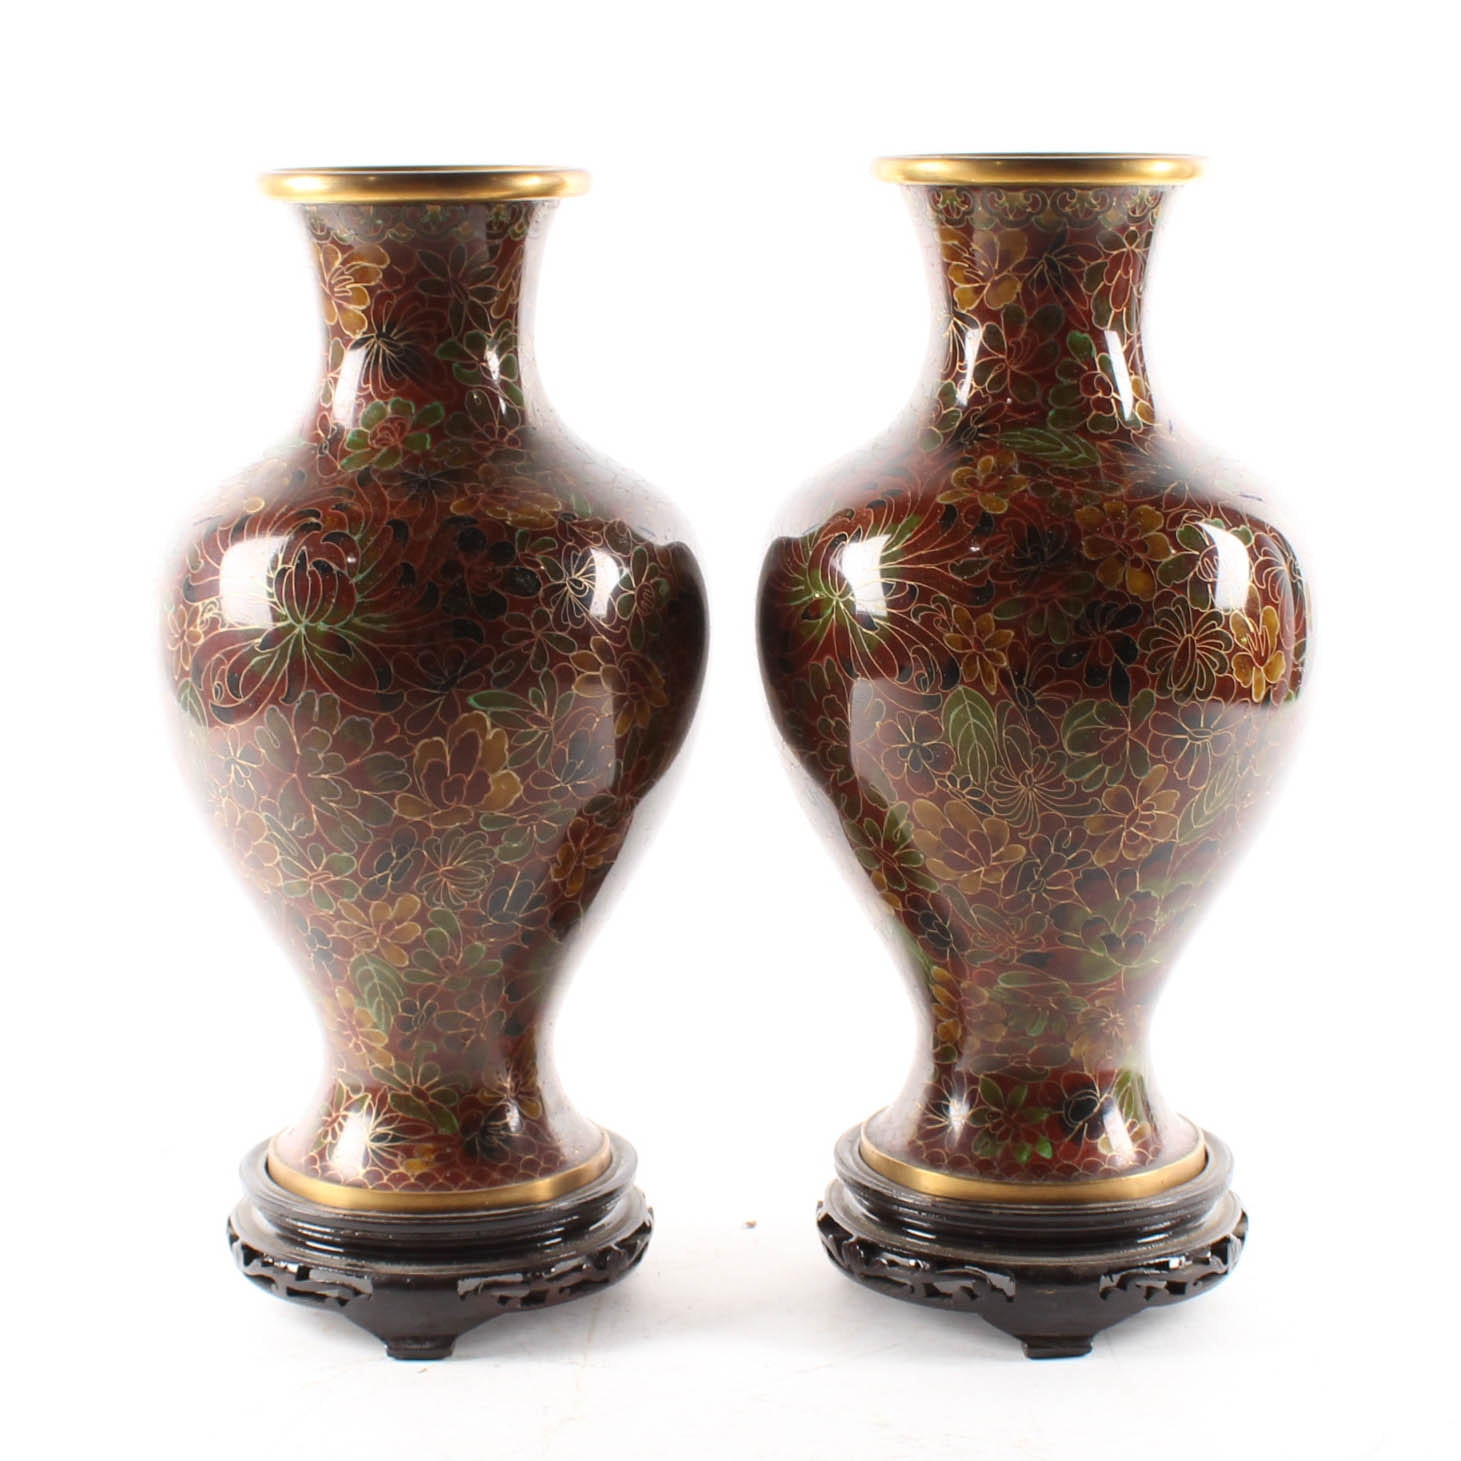 Chinese Zi Jin Cheng Cloisonne Vases